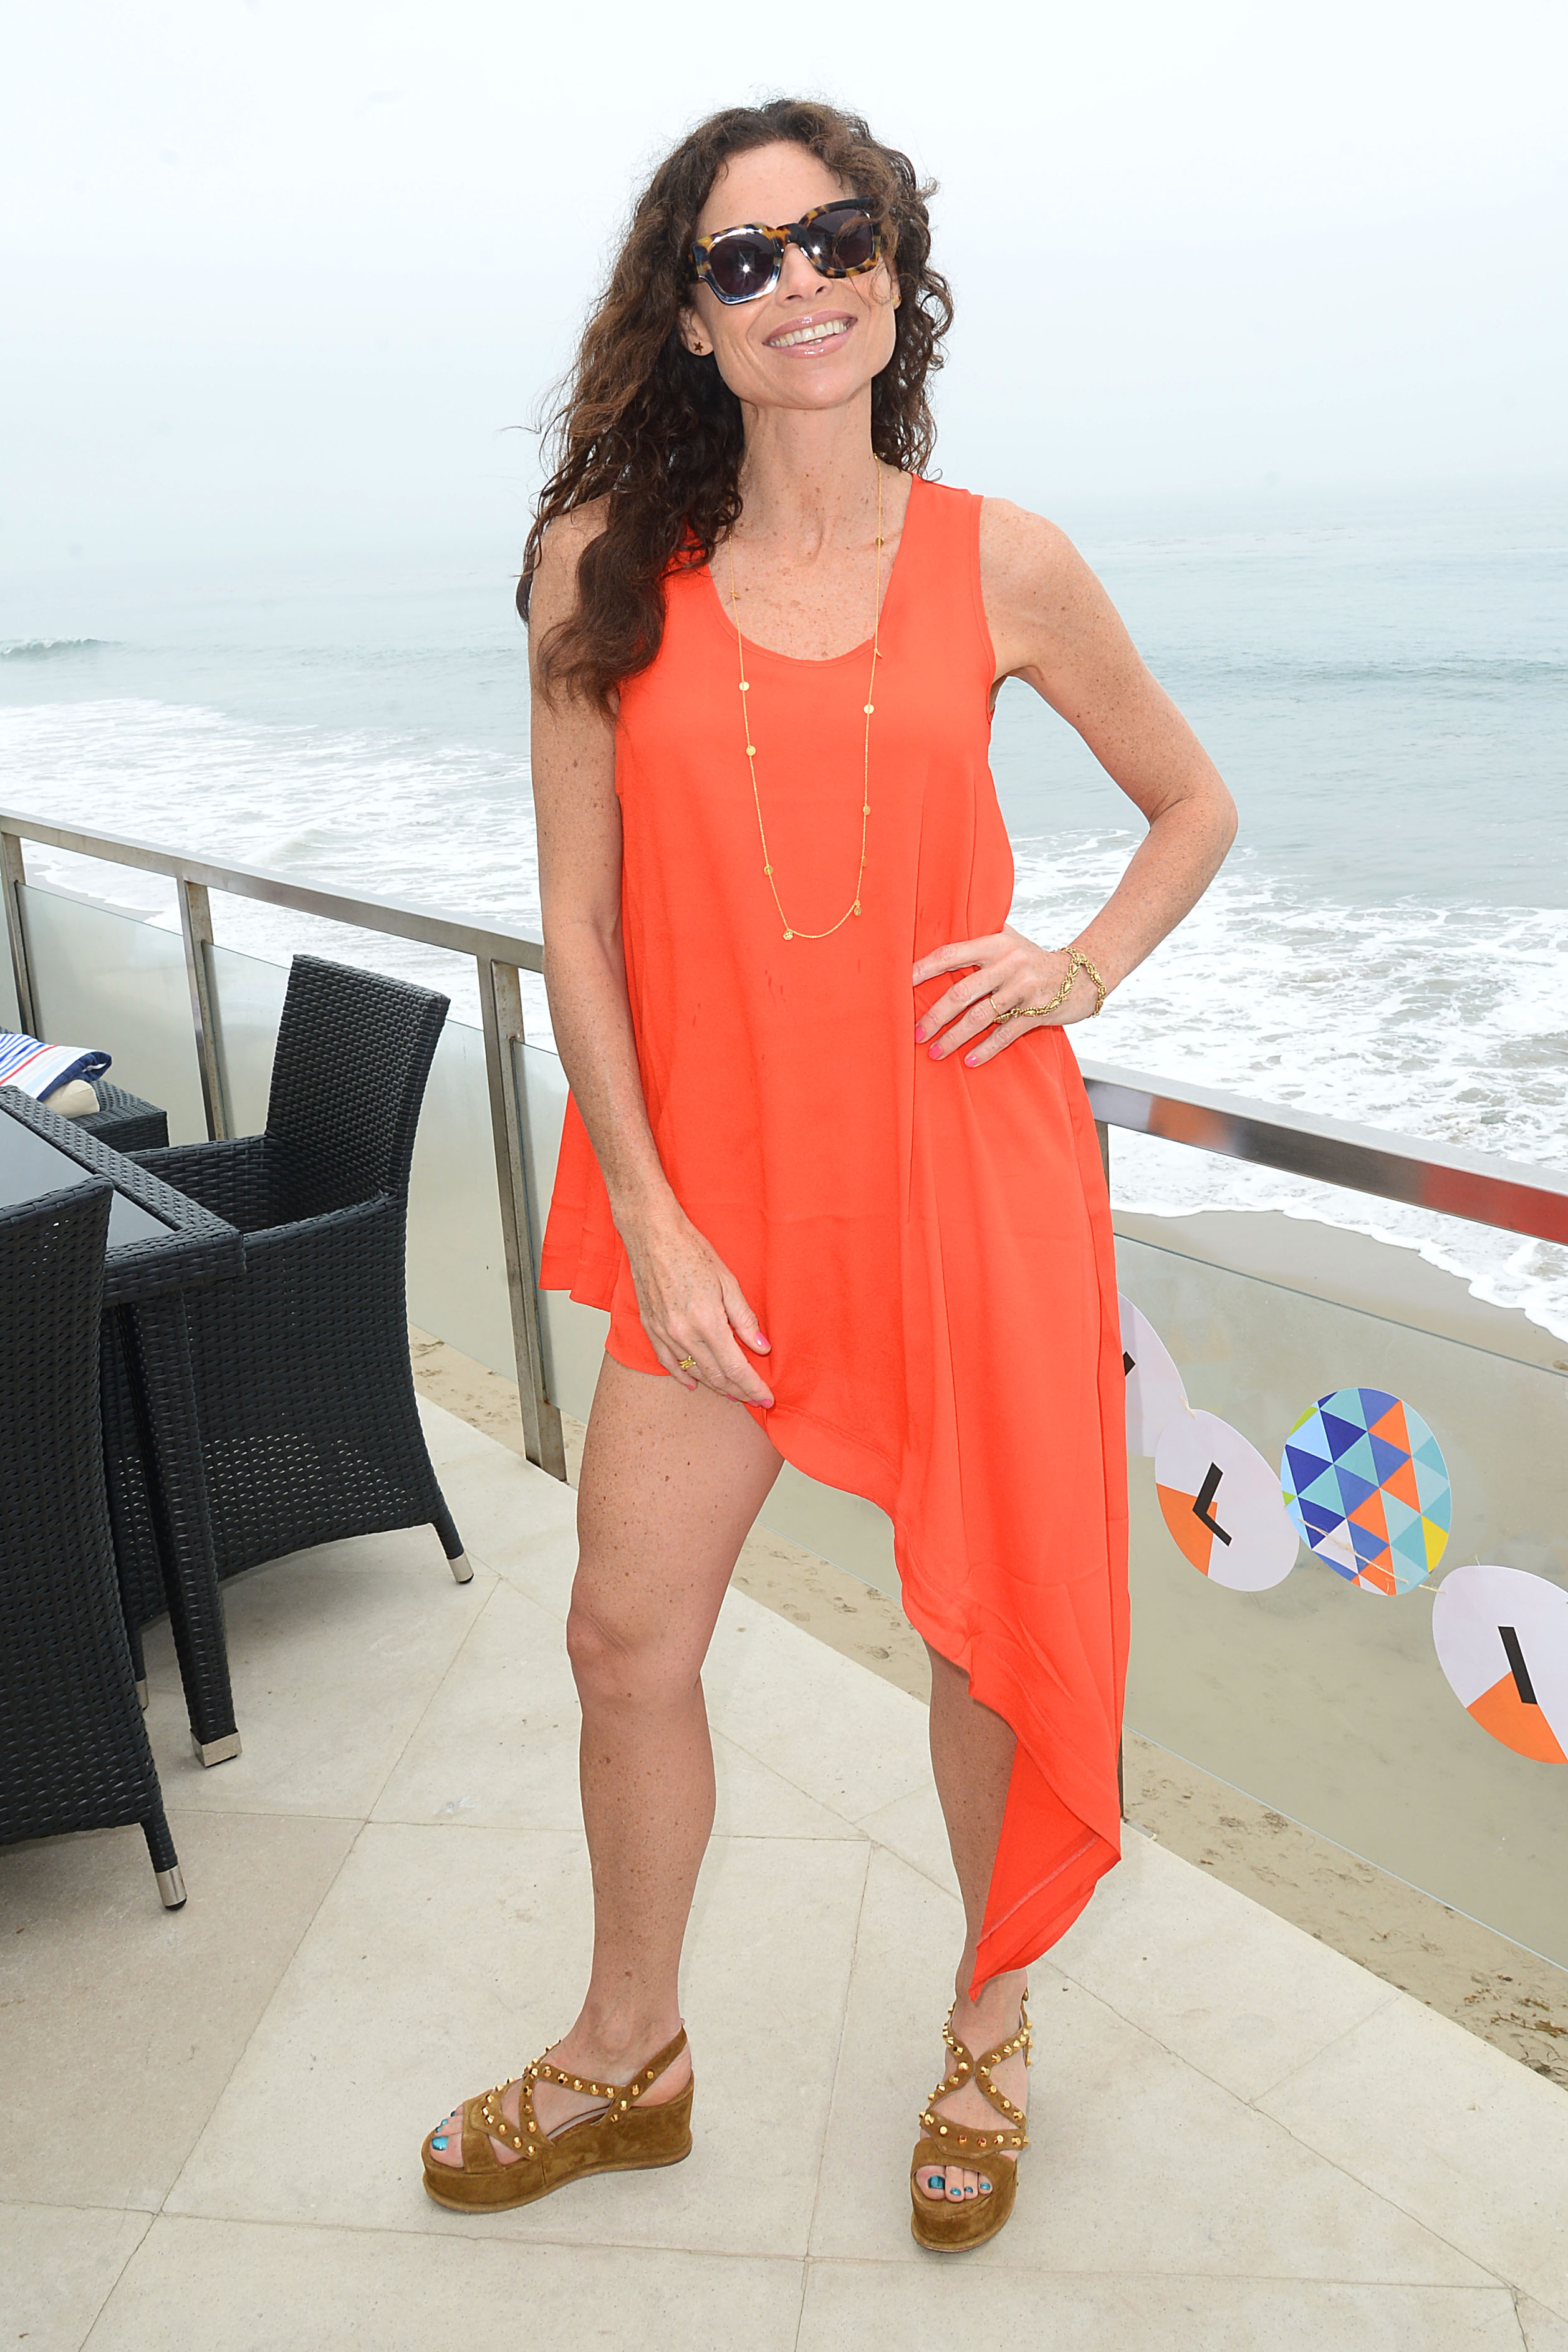 Can find minnie driver feet sorry